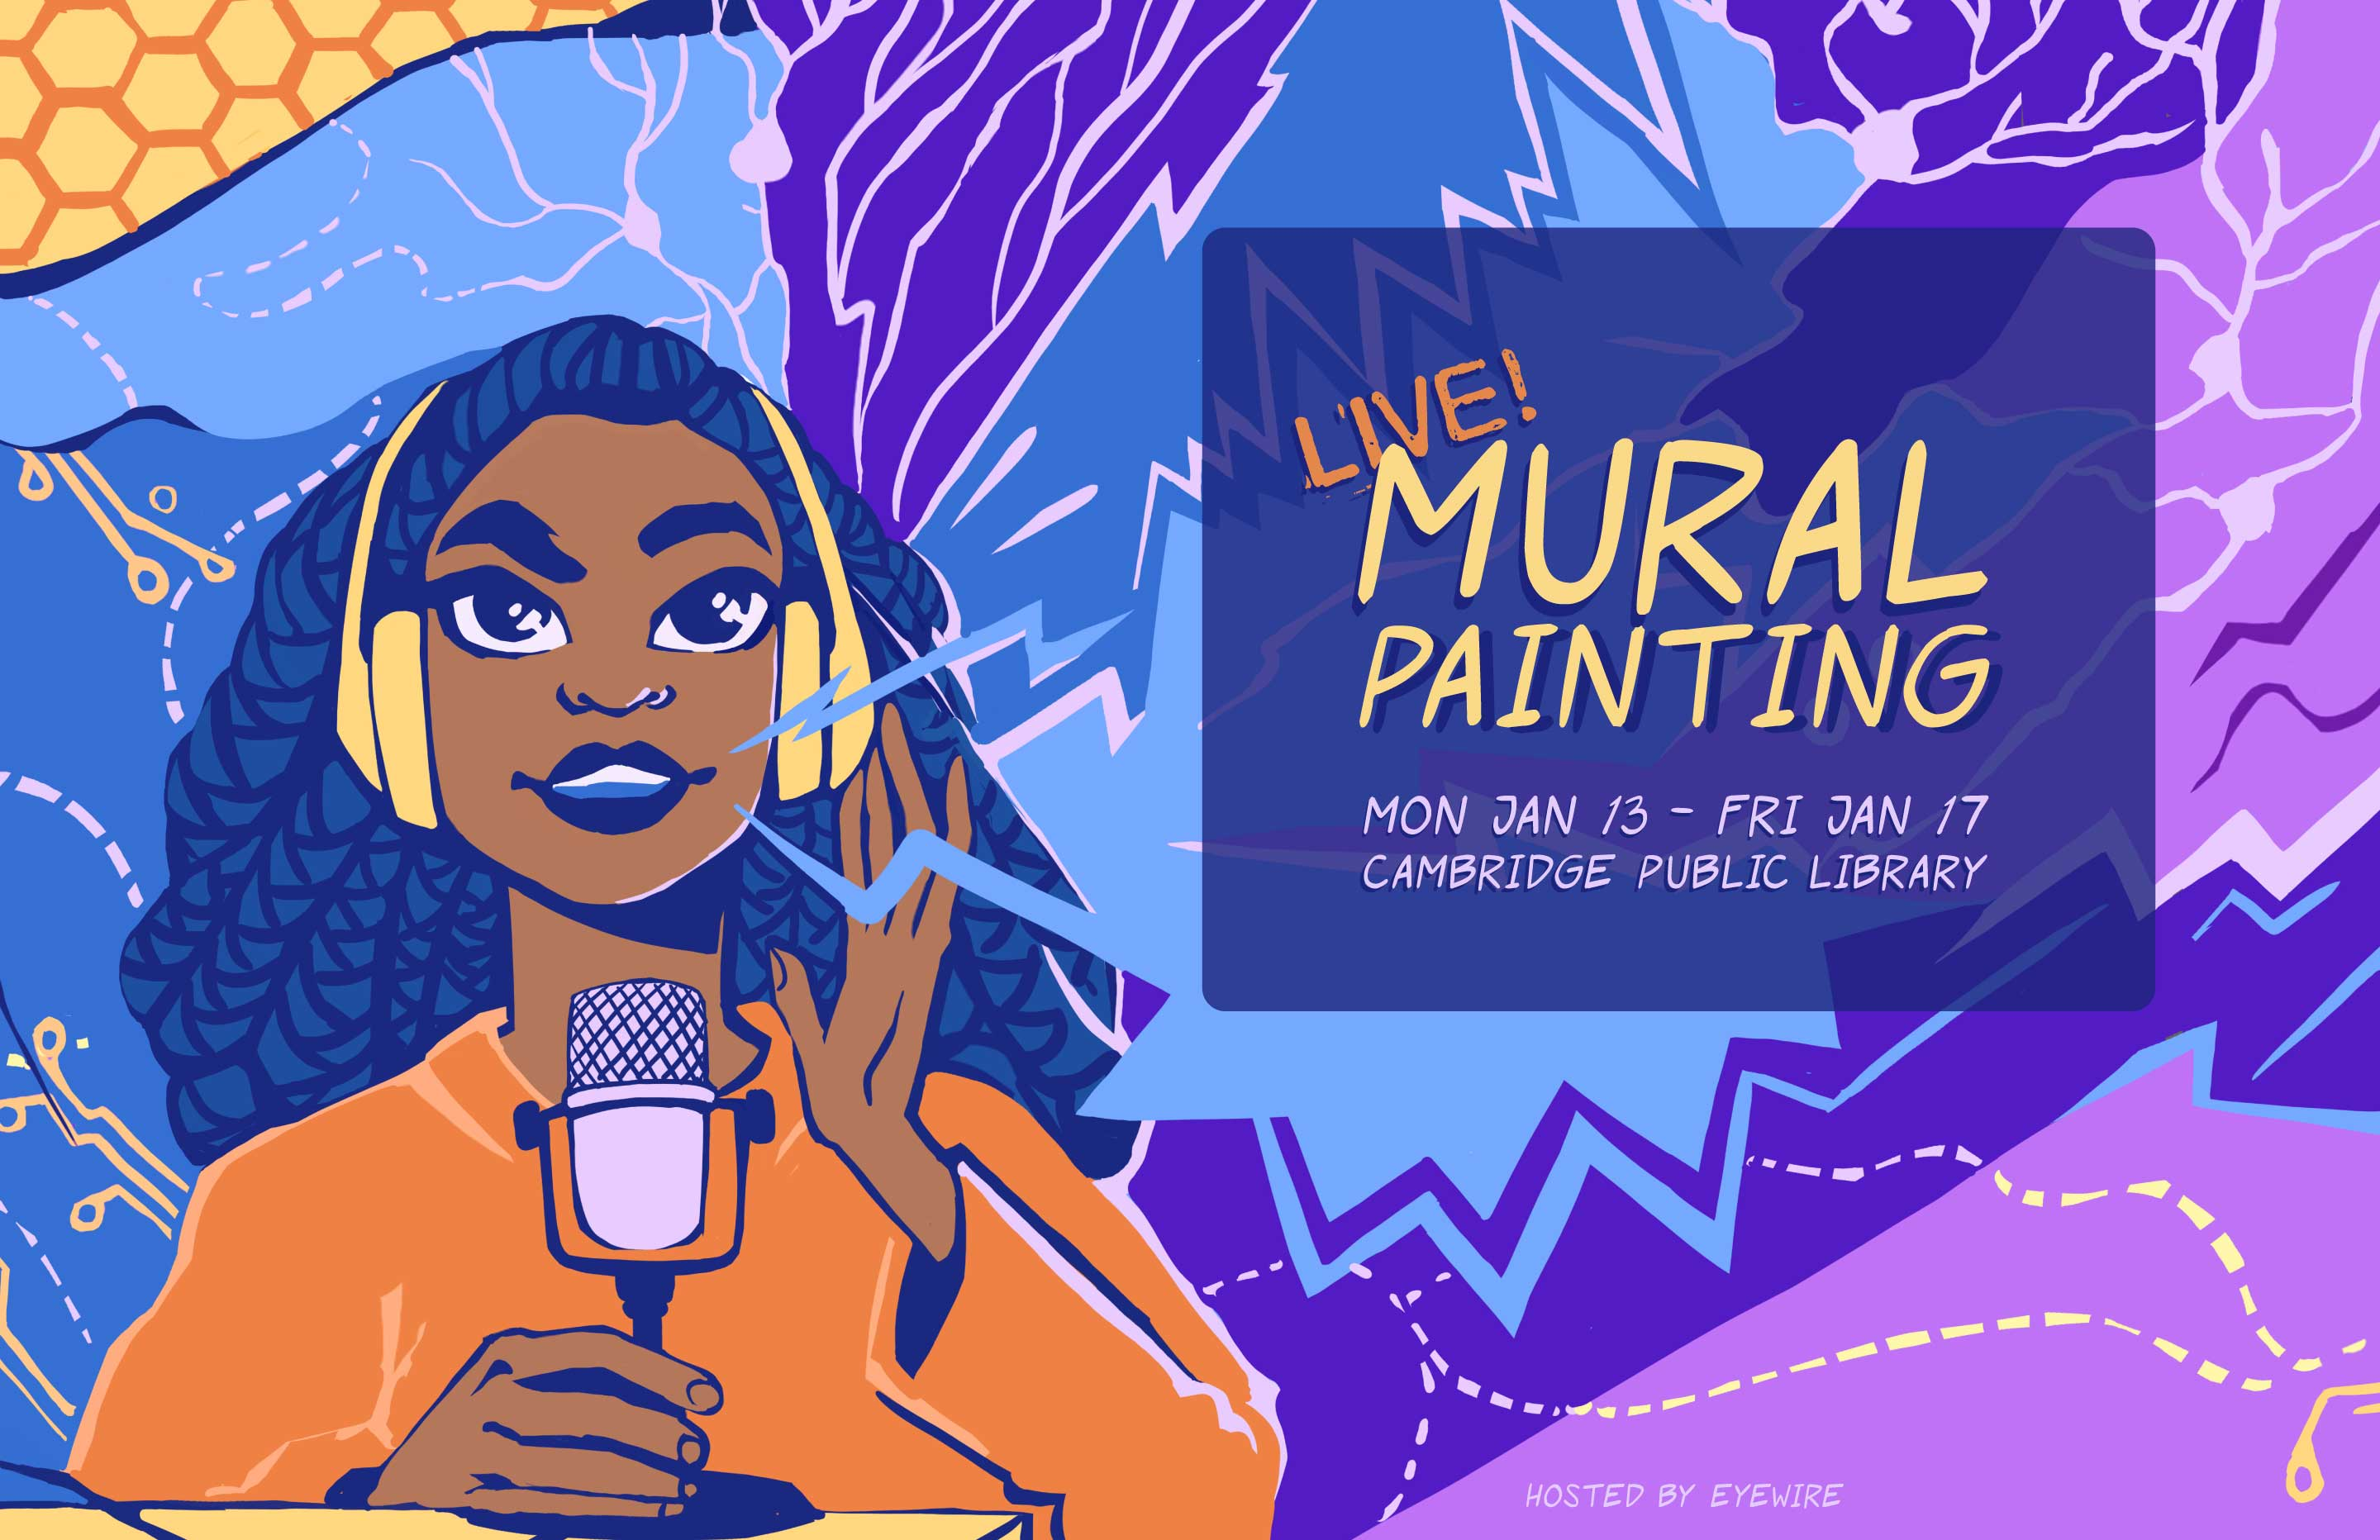 Live! Mural Painting